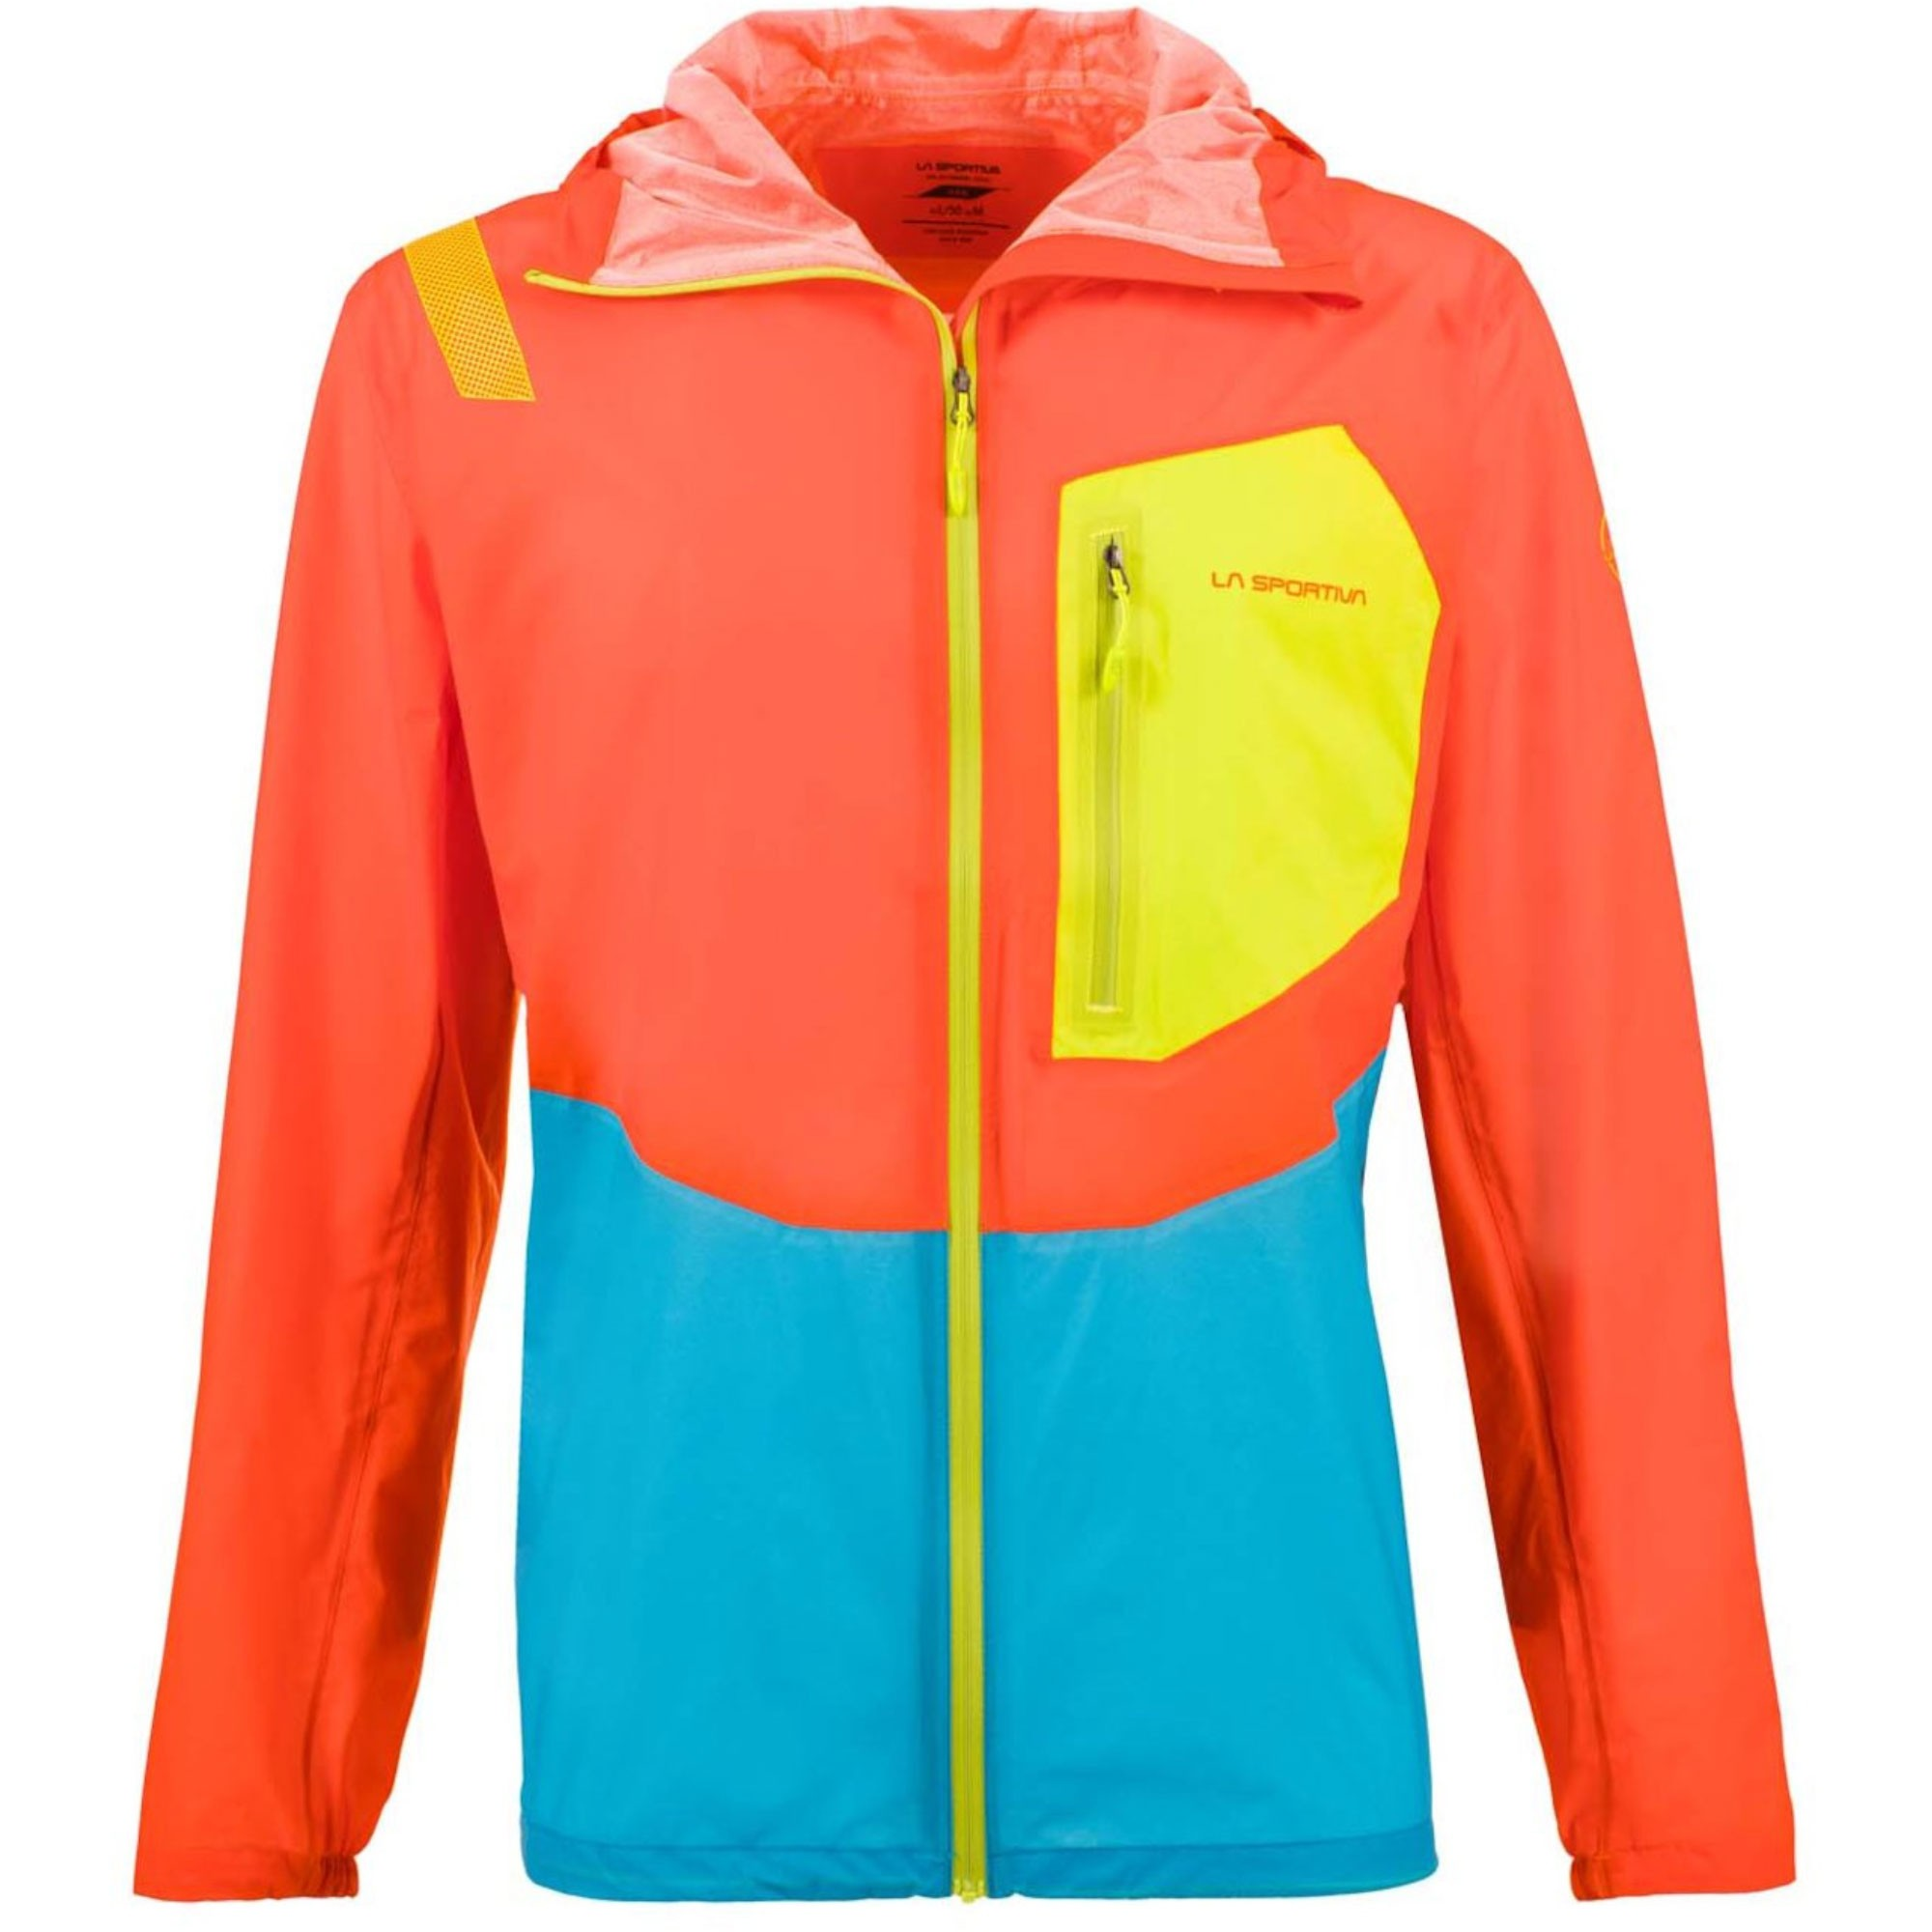 LA SPORTIVA Hail Waterproof Jacket - Pumpkin/Tropic Blue